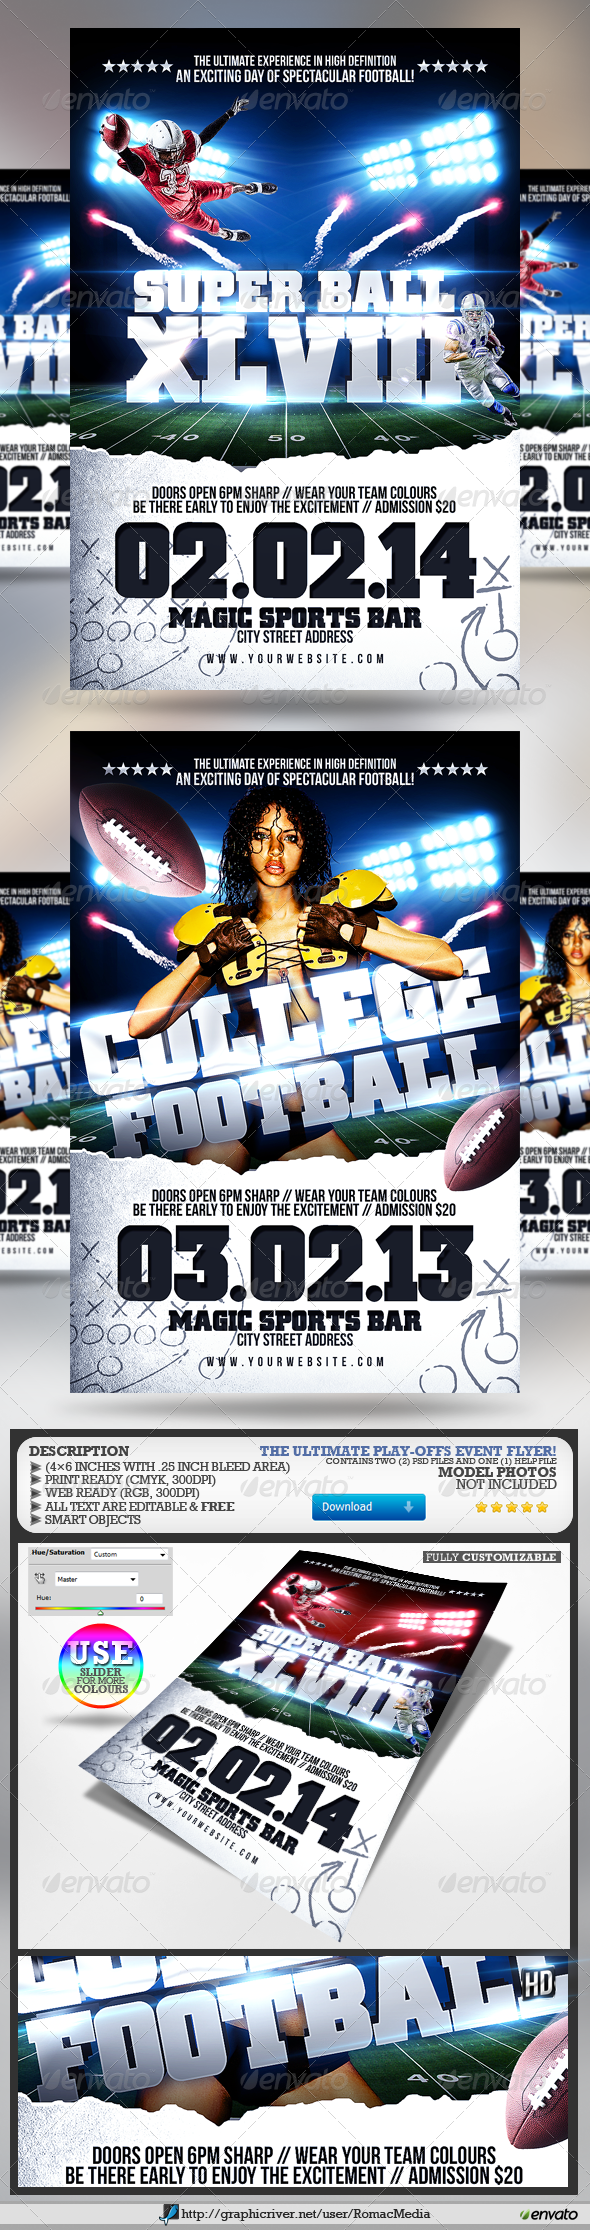 Super Ball/College Football Flyer - Sports Events